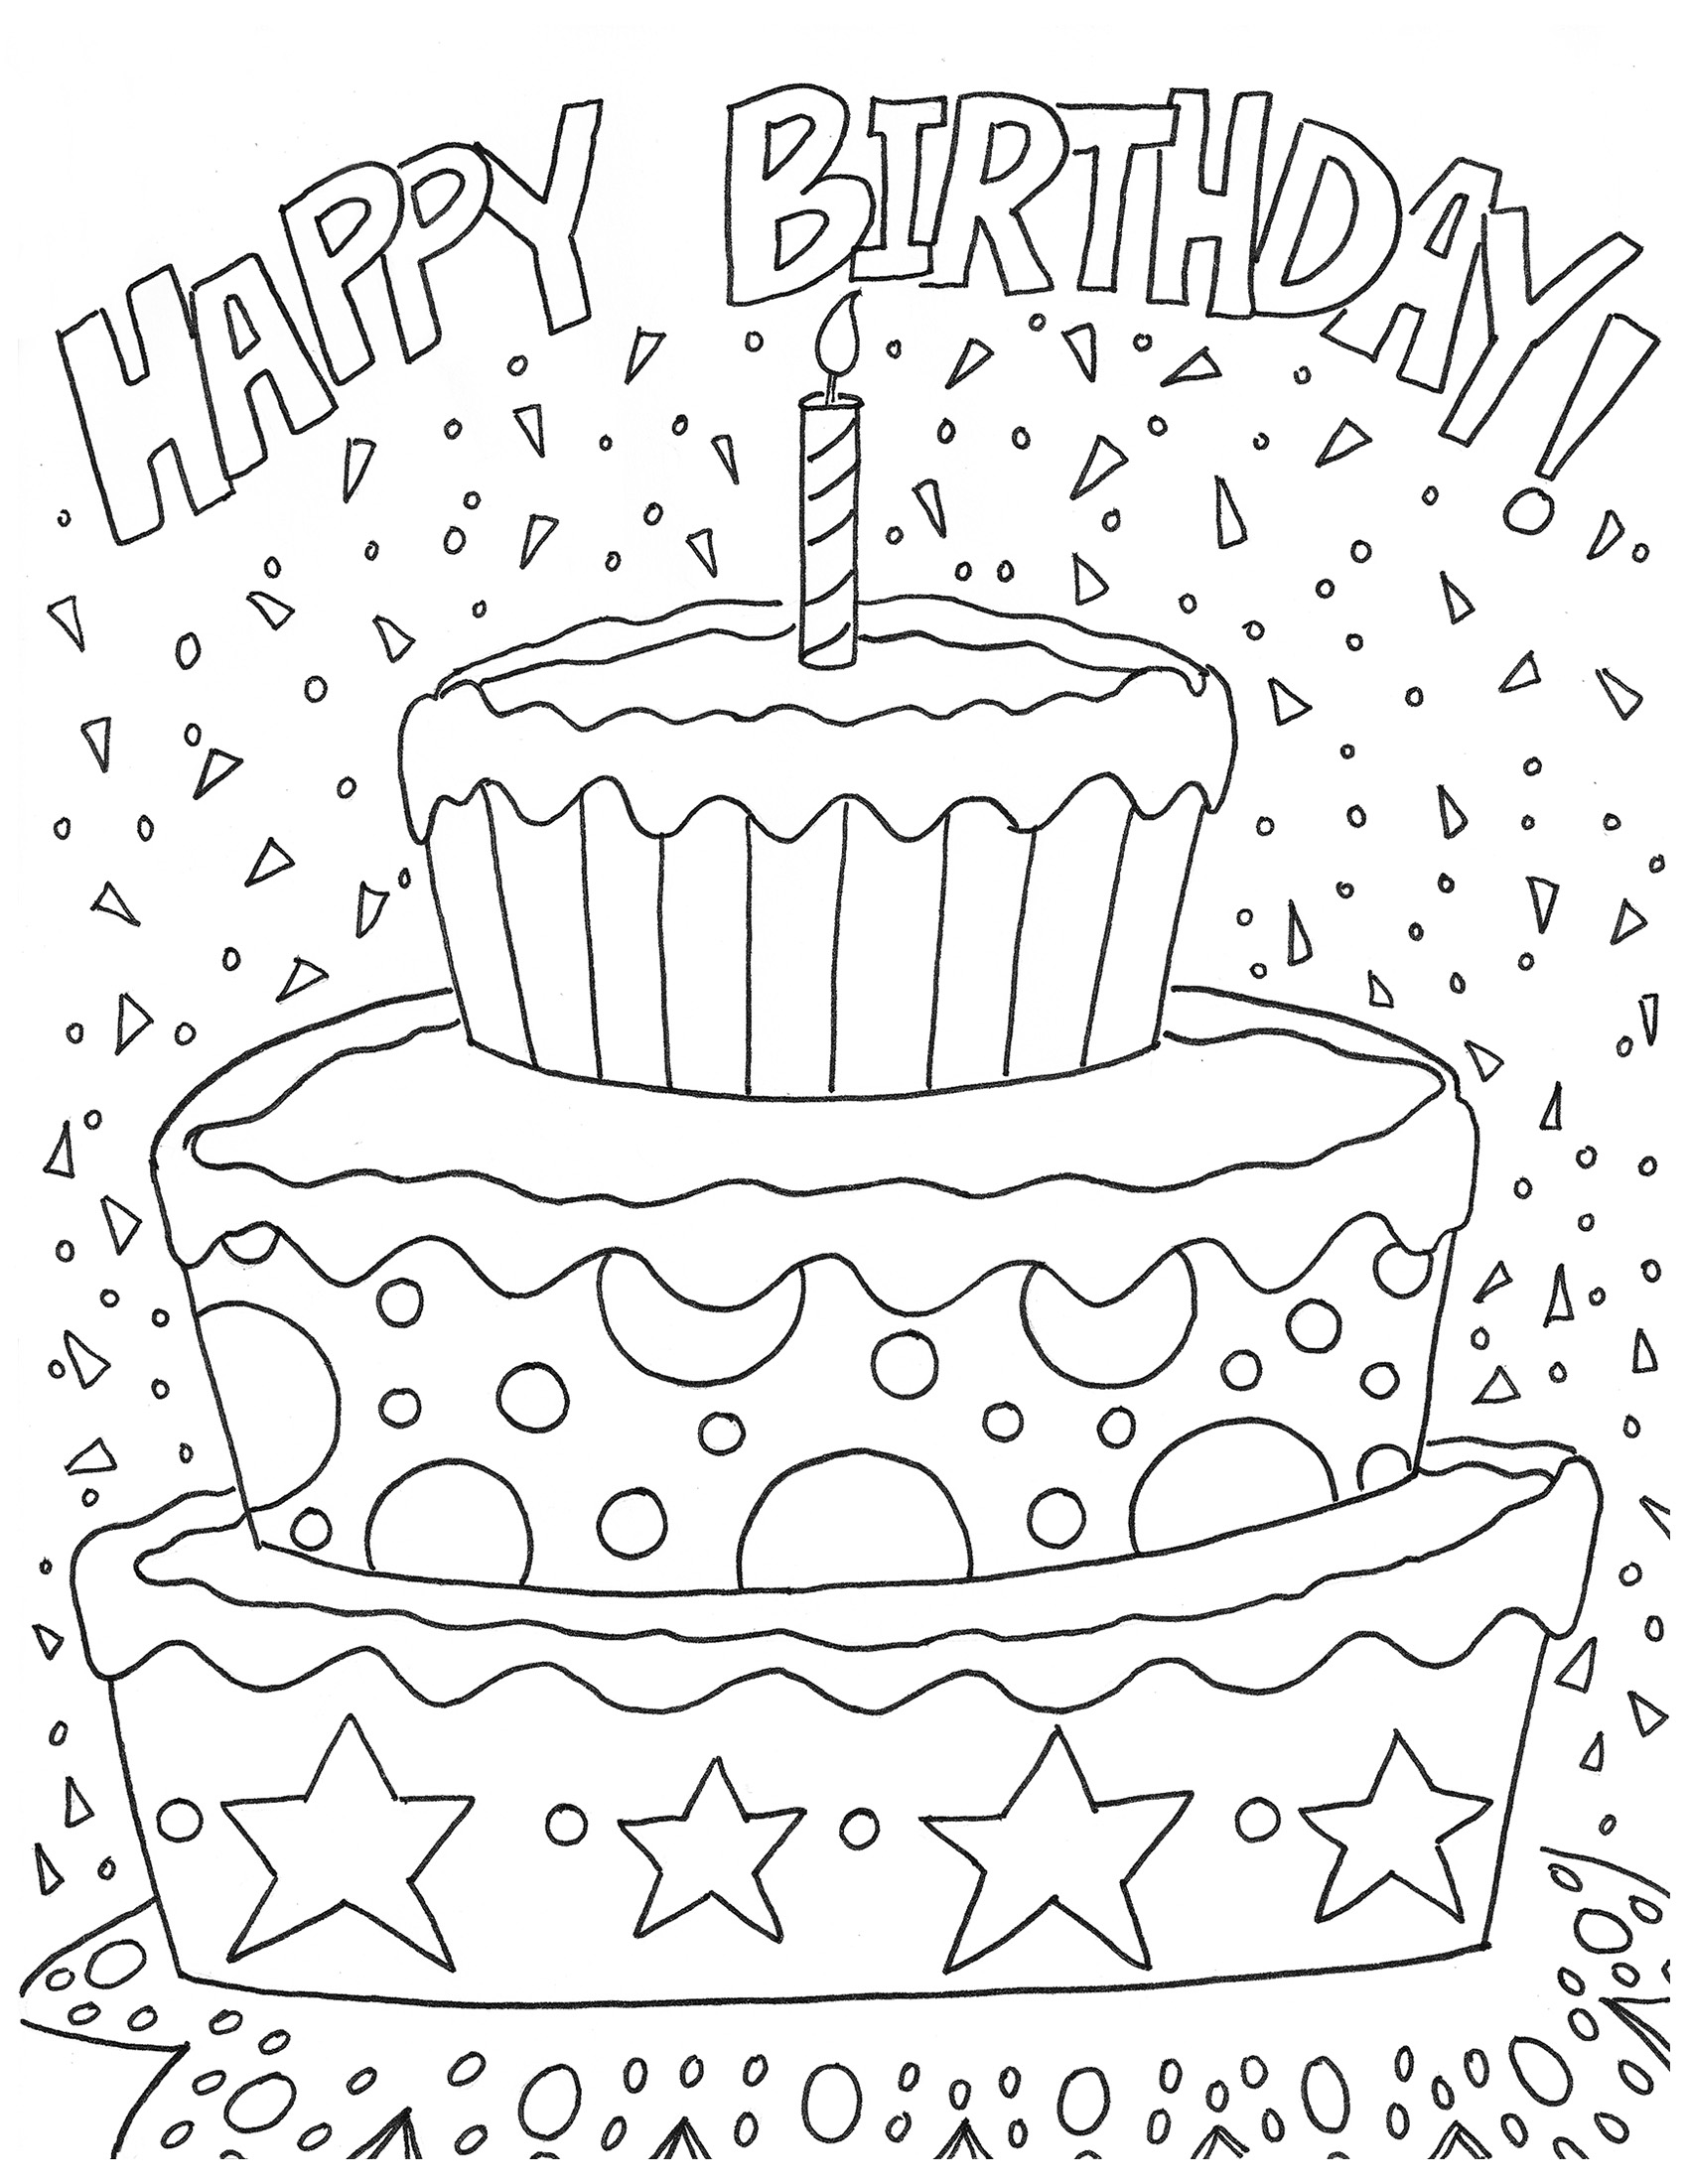 Free Happy Birthday Coloring Page And Hershey